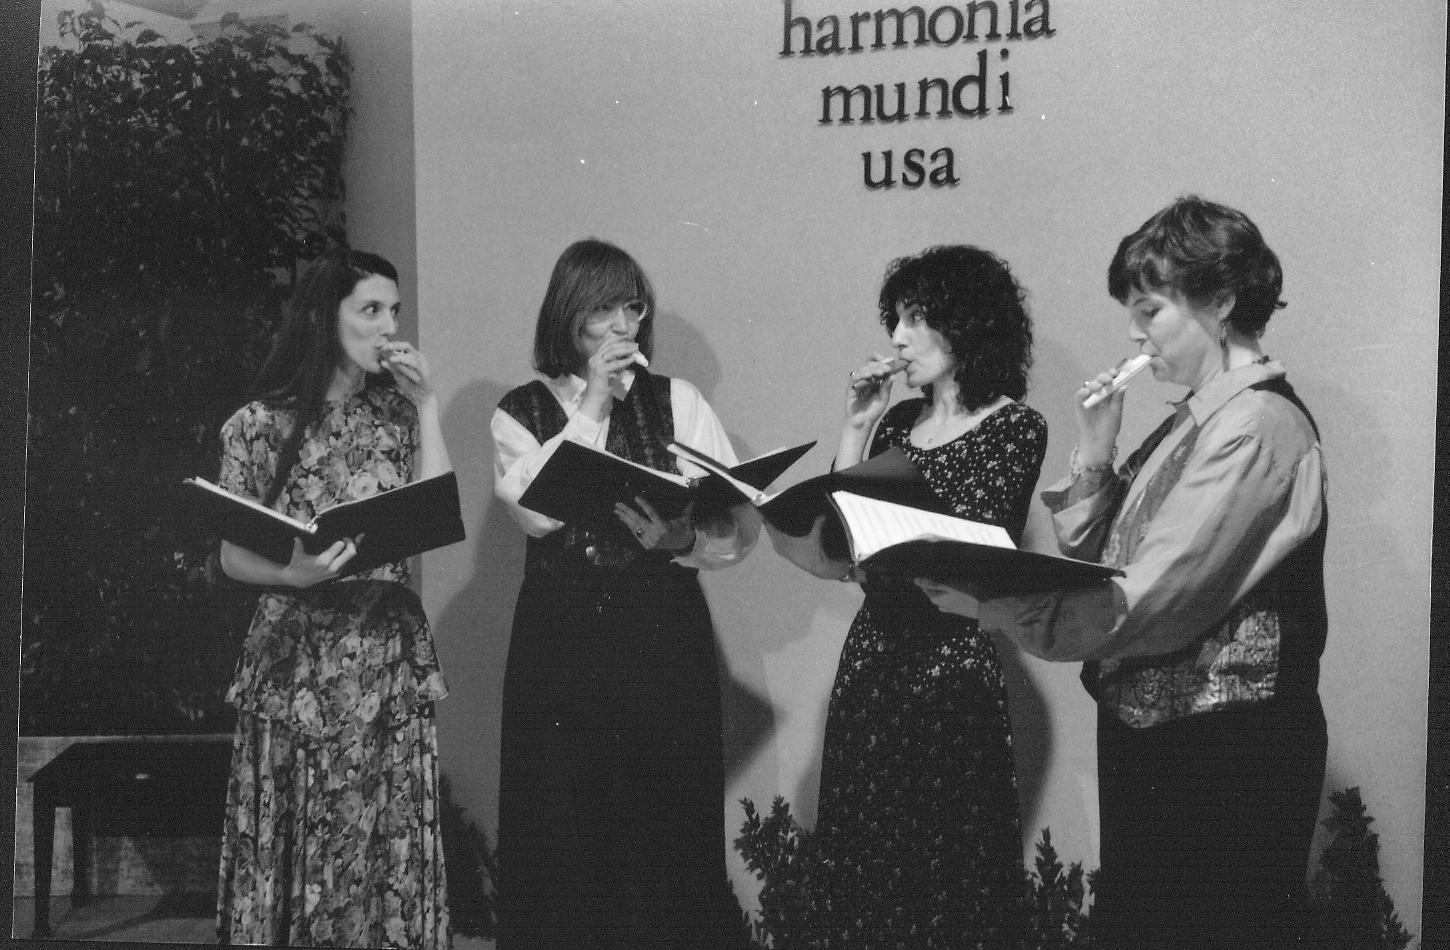 Celebrating with kazoos at the harmonia mundi usa offices c. 1994